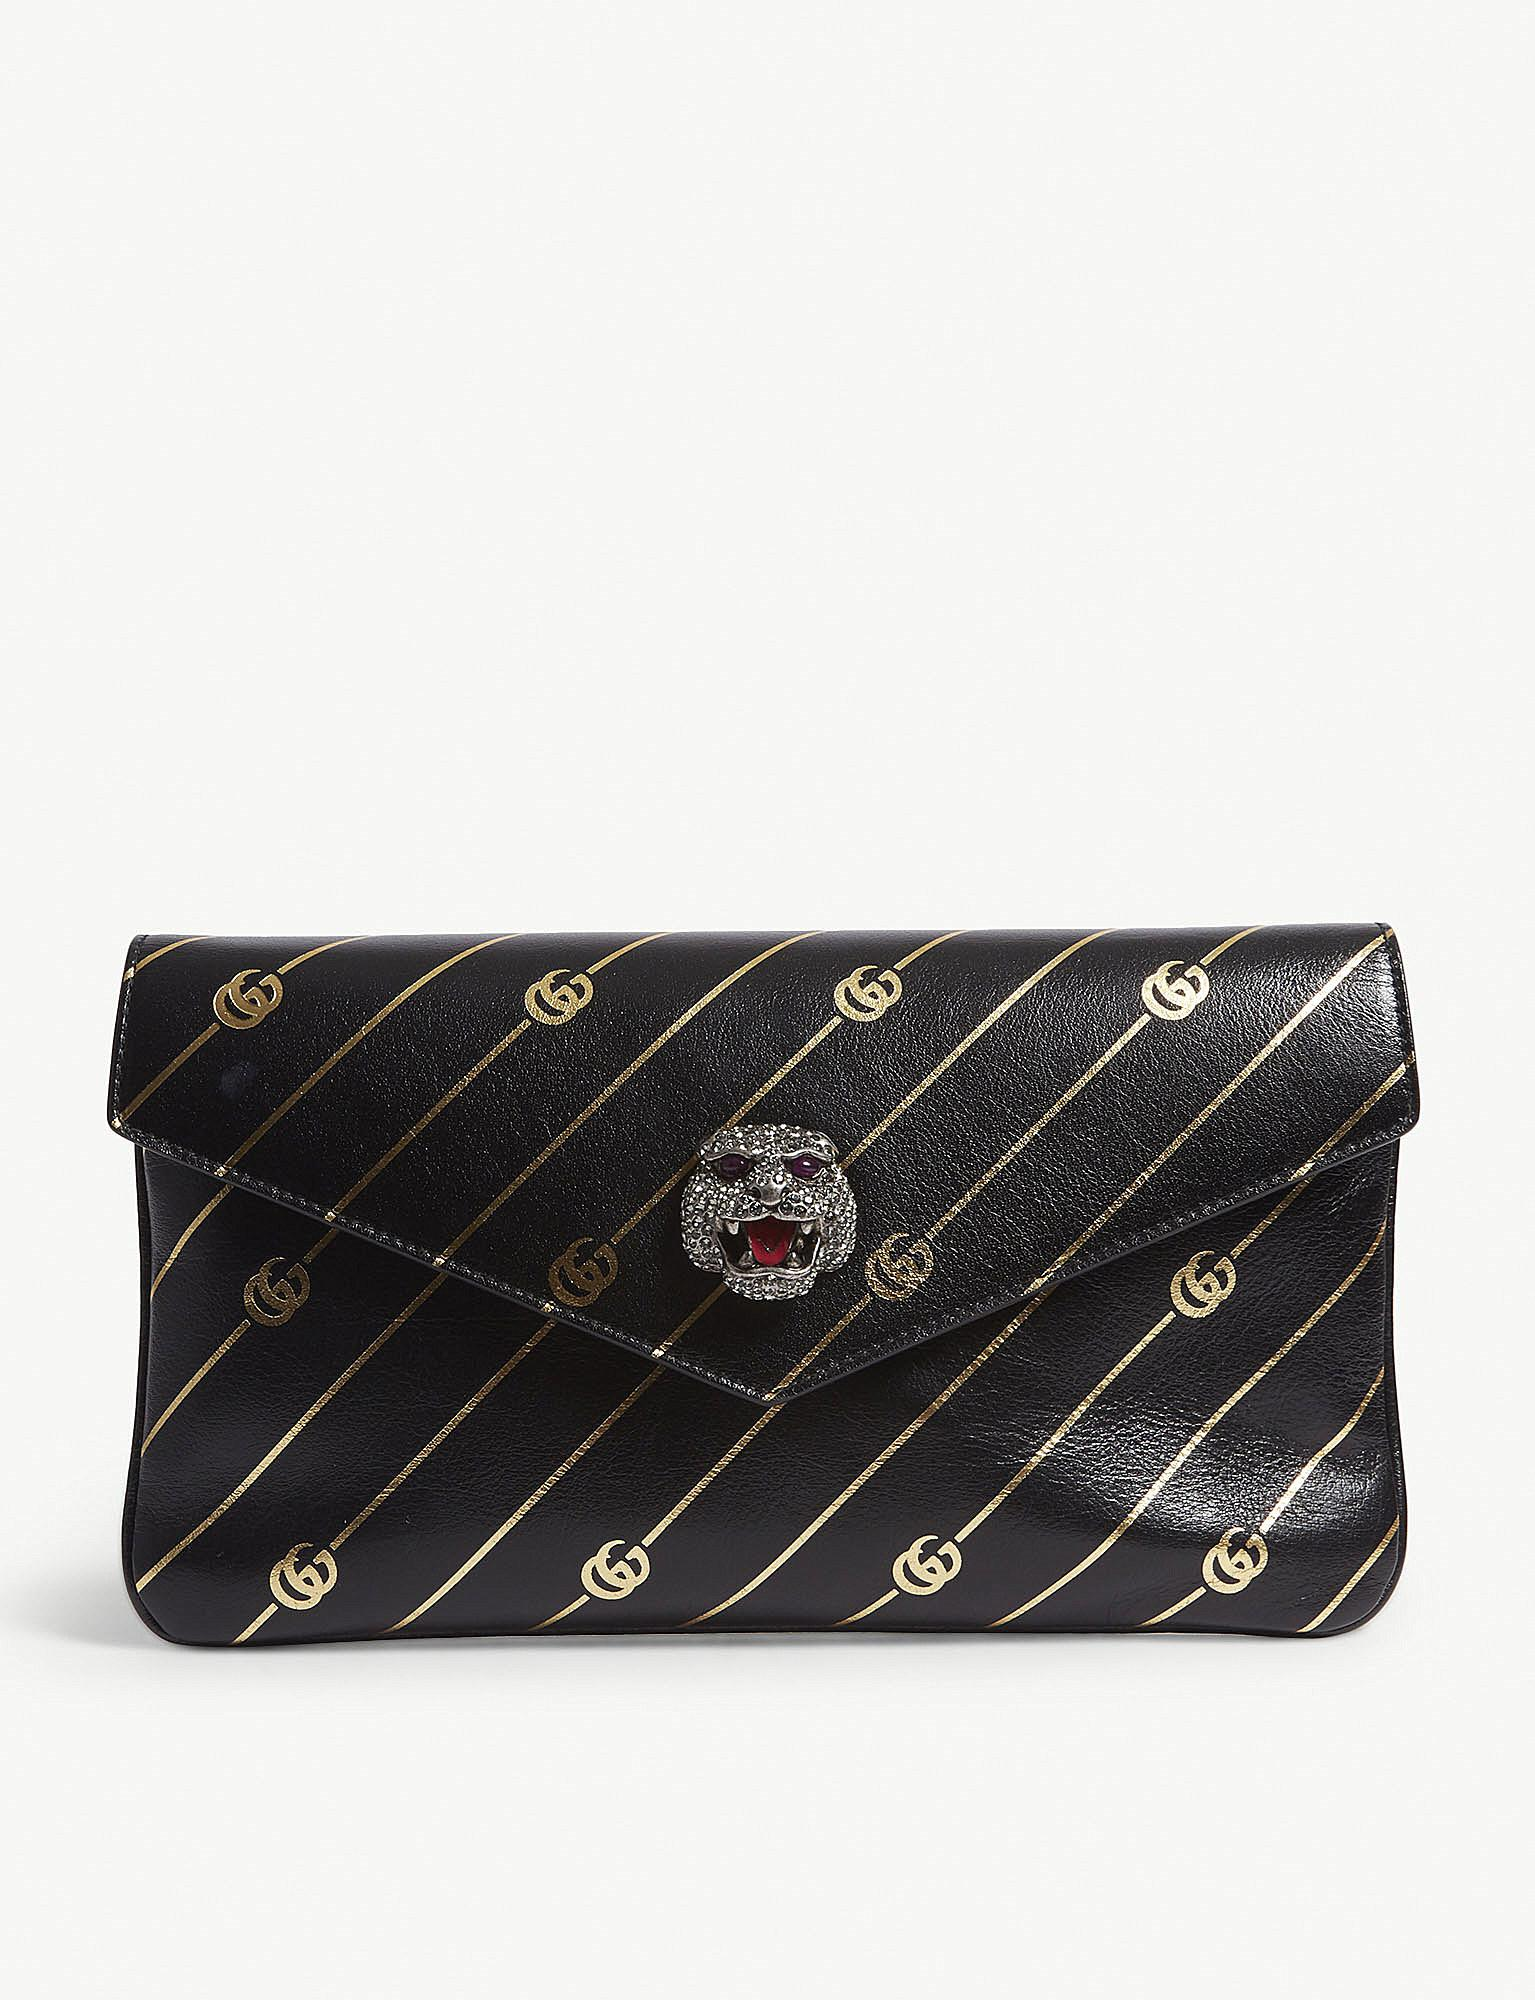 6bd0aee4b5b286 Gucci Broadway Crystal Panther Leather Clutch in Black - Lyst